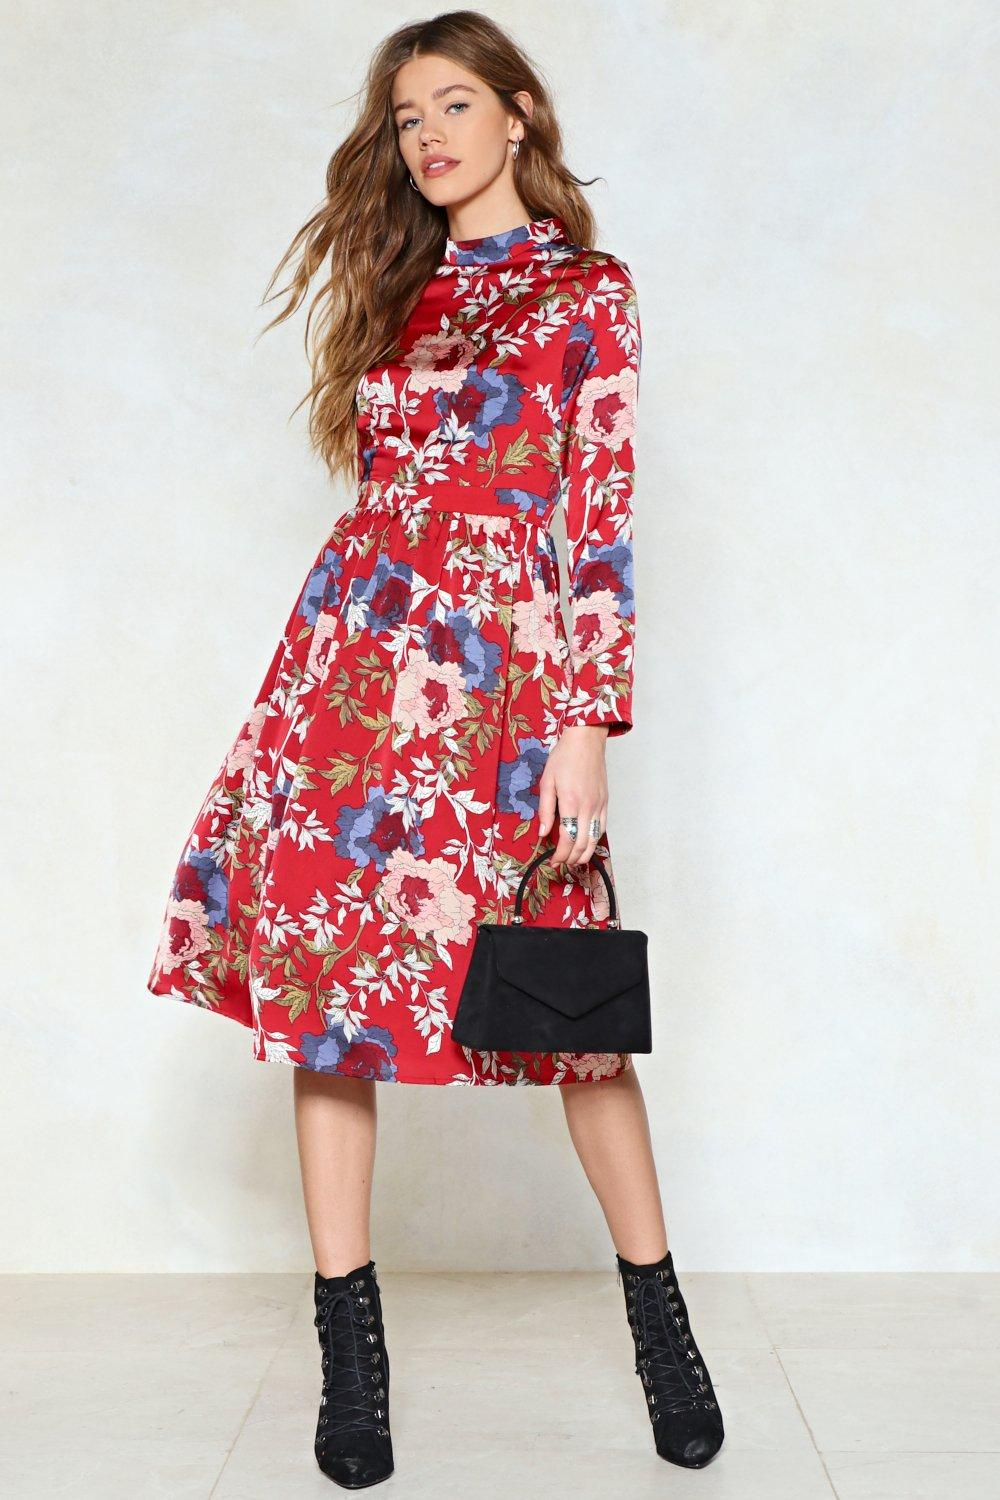 a41f03c00 Womens Red Garden Party Floral Dress